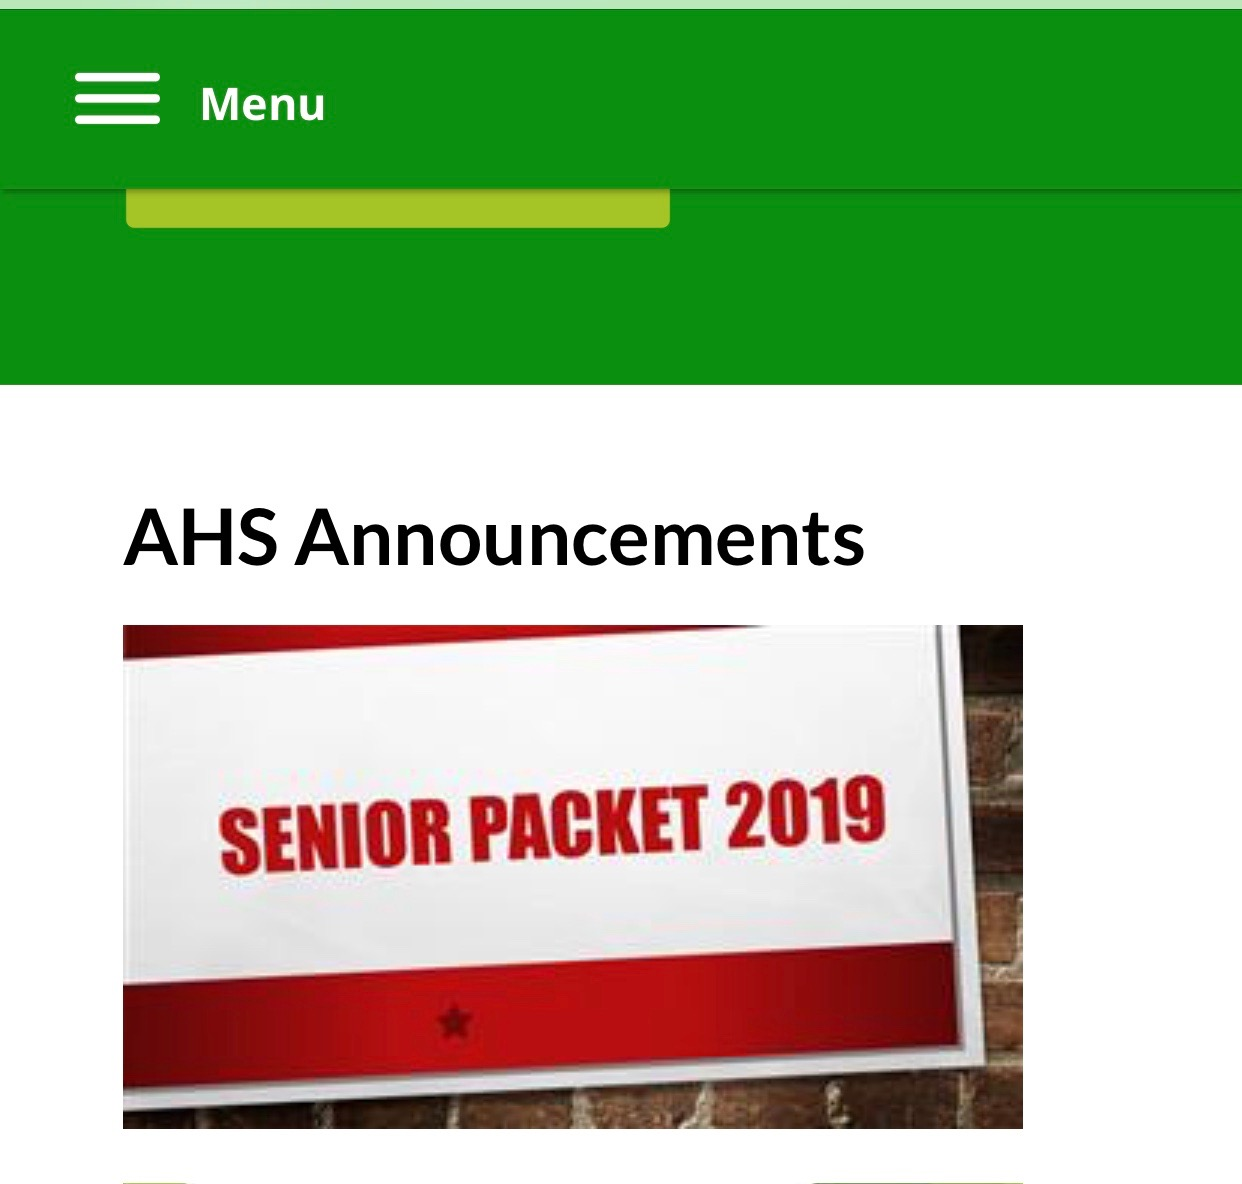 When students go to the school website, they will find this file under AHS Announcements.